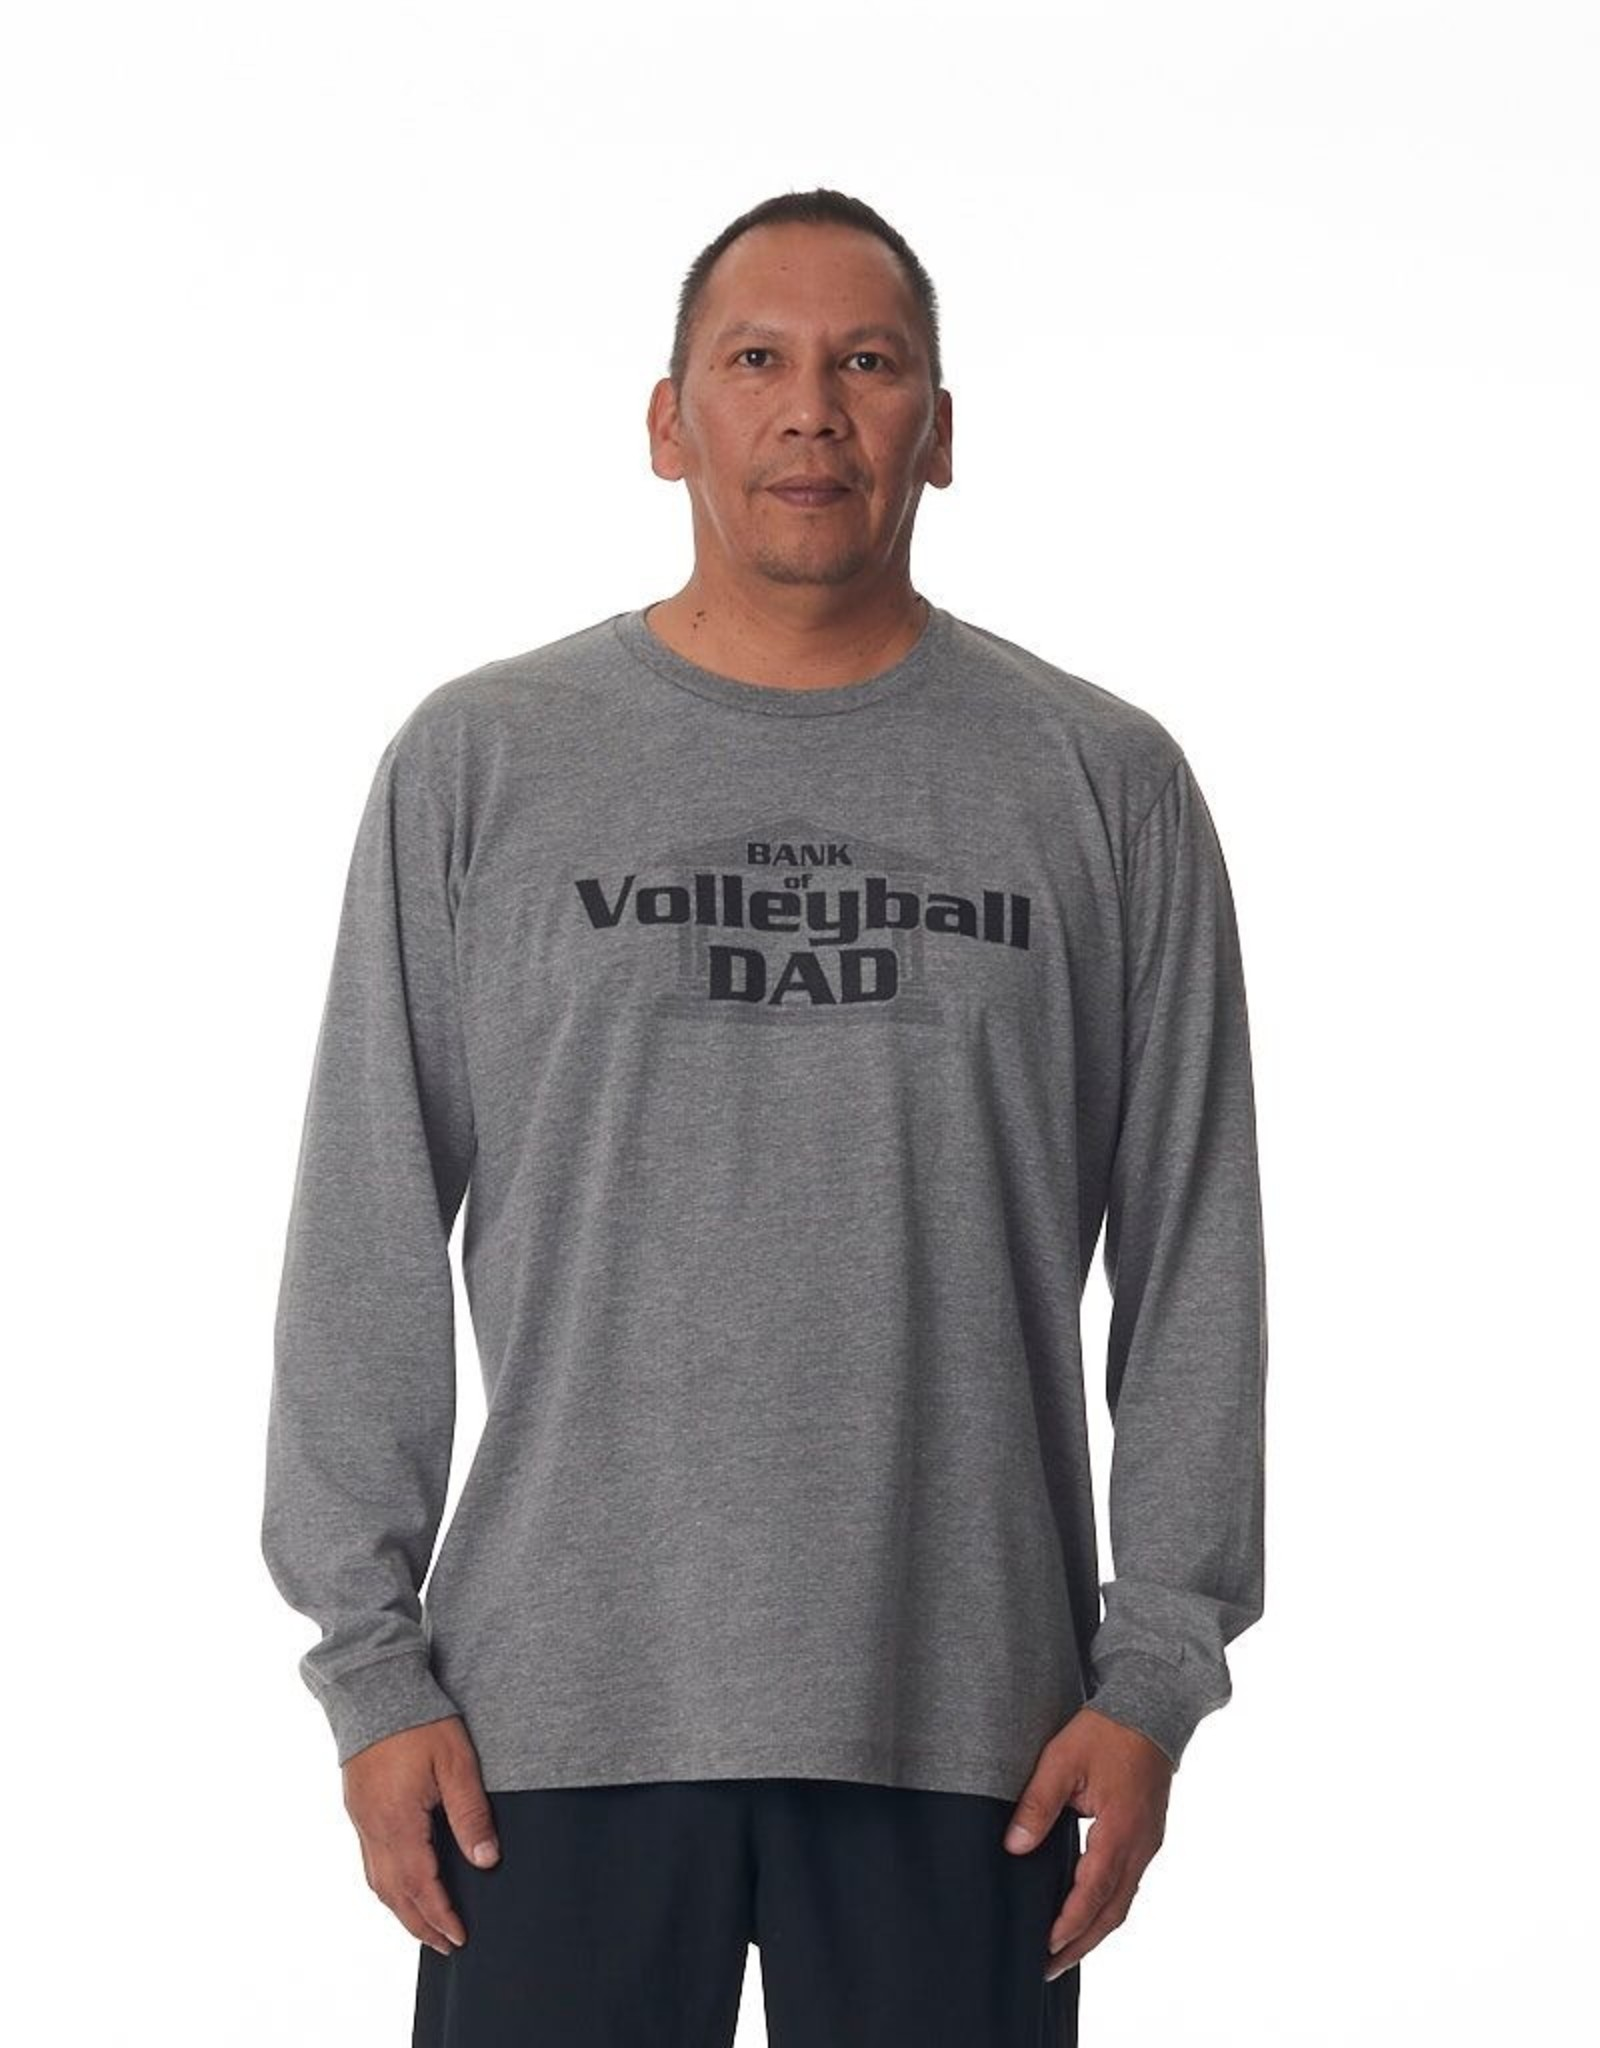 Just Volleyball JV Bank of Dad L/S Tee